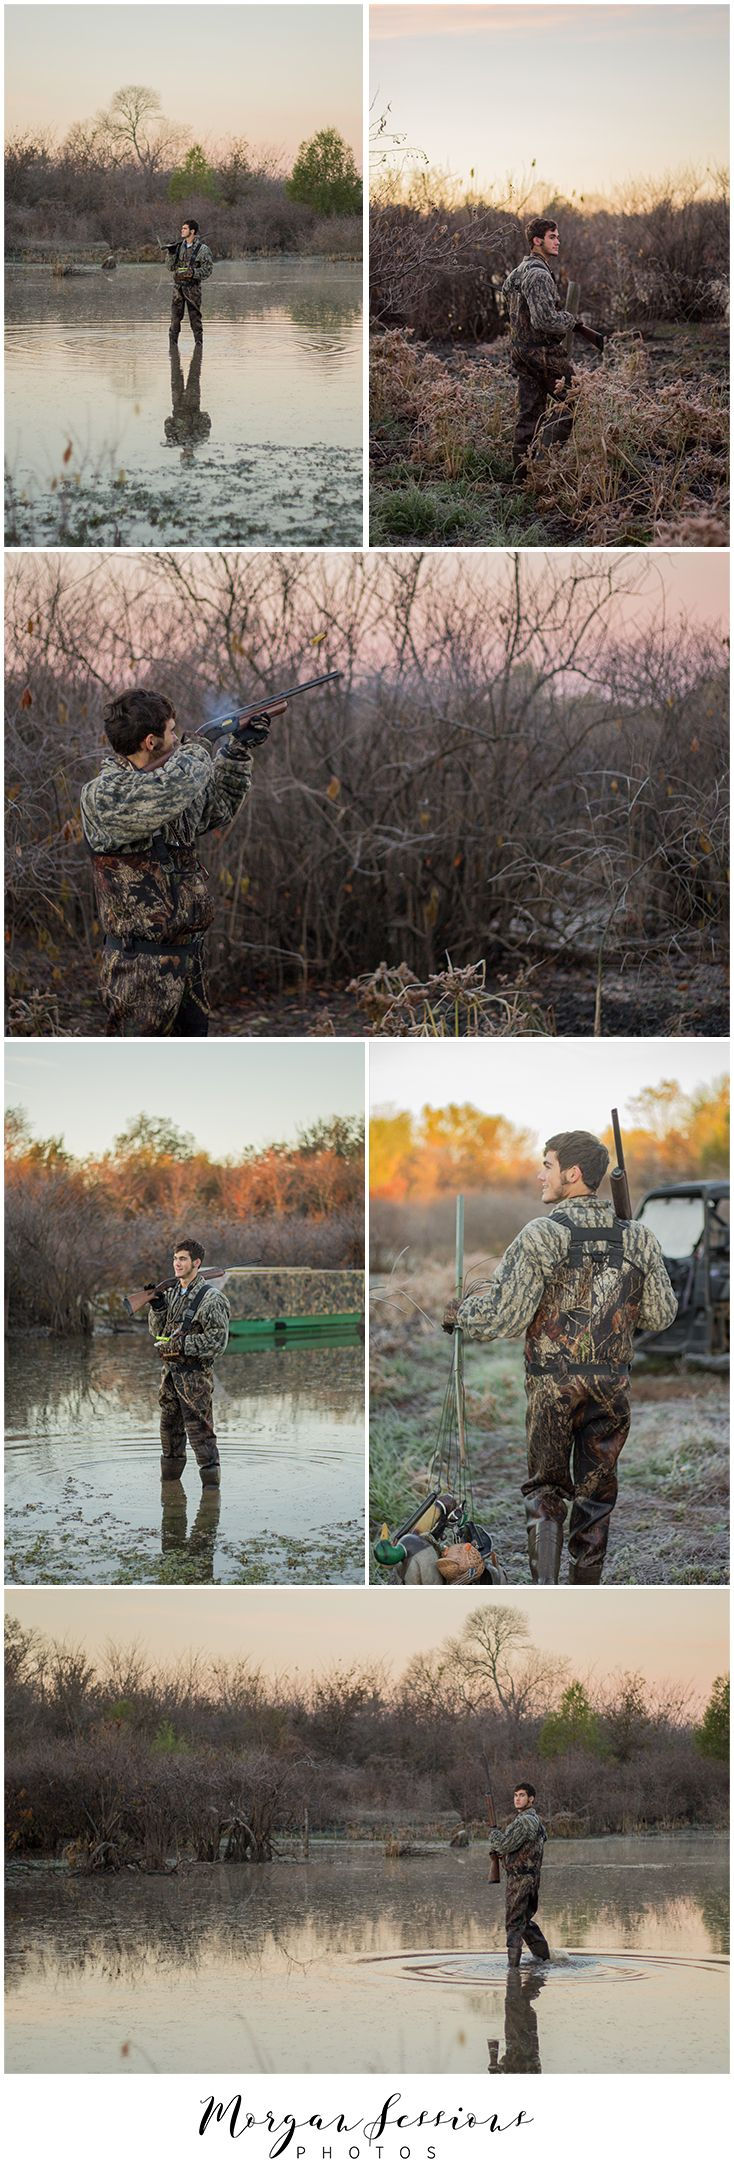 Senior pictures. senior guy. duck hunting. country boy seniors. Morgan Sessions Photos.